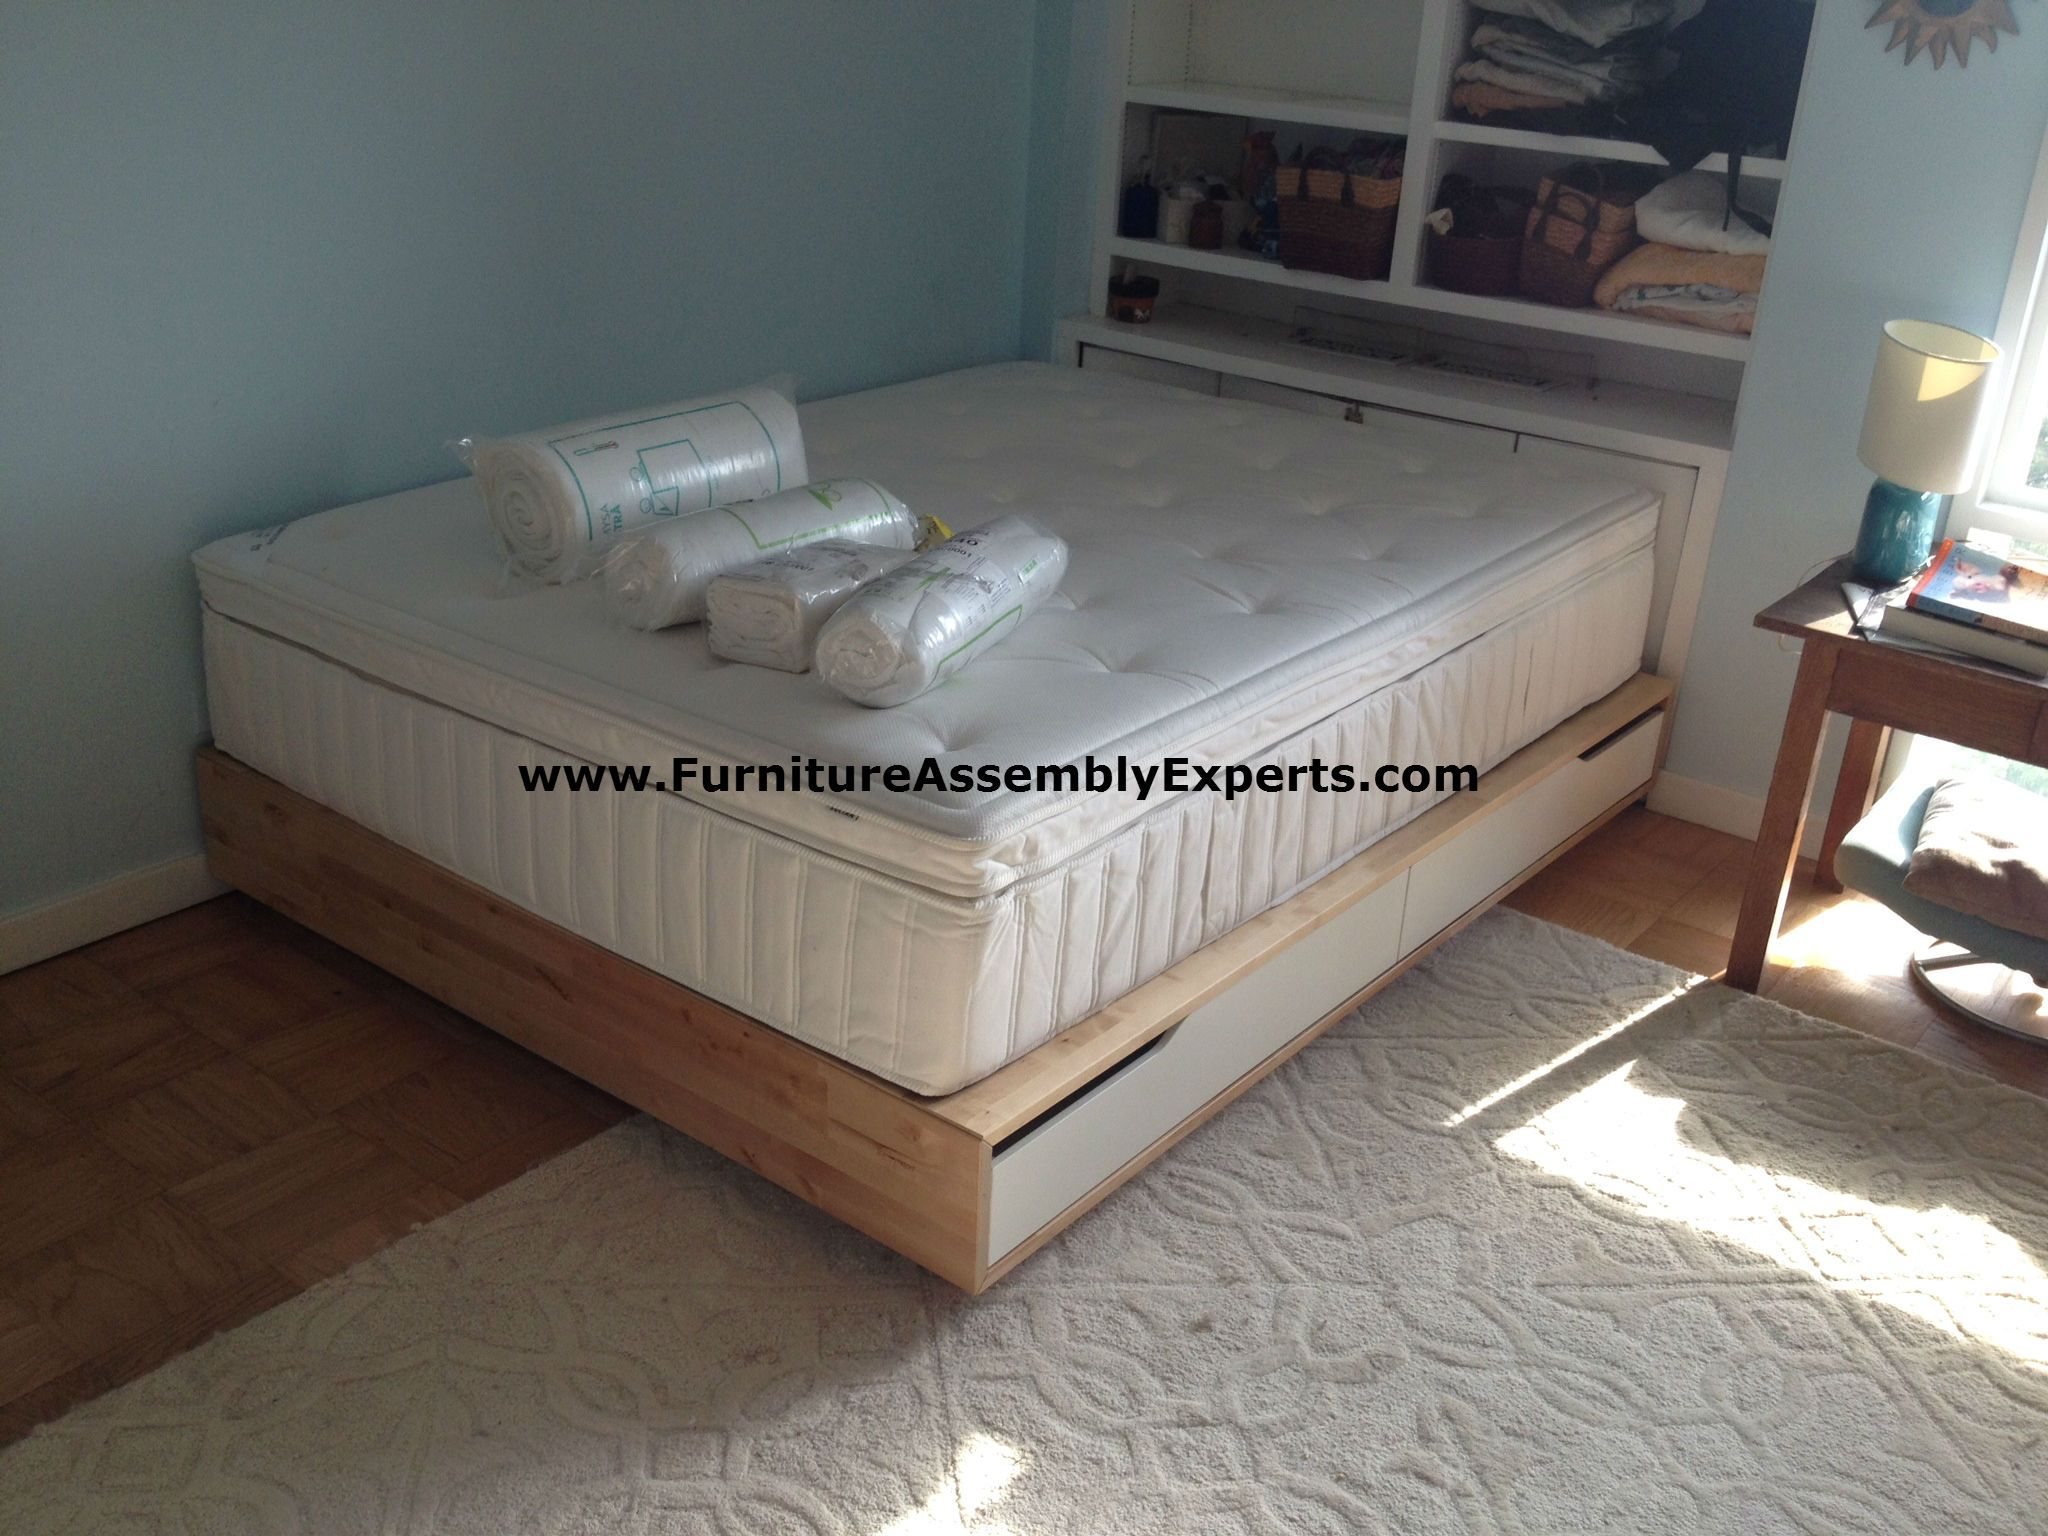 Ikea Mandal Bett Ikea Mandal Bed Assembled At 39 West Lexington Apartment In Baltimore Md By Furniture Assembly Experts Llc… | Ikea Furniture Assembly, Furniture Assembly, Furniture